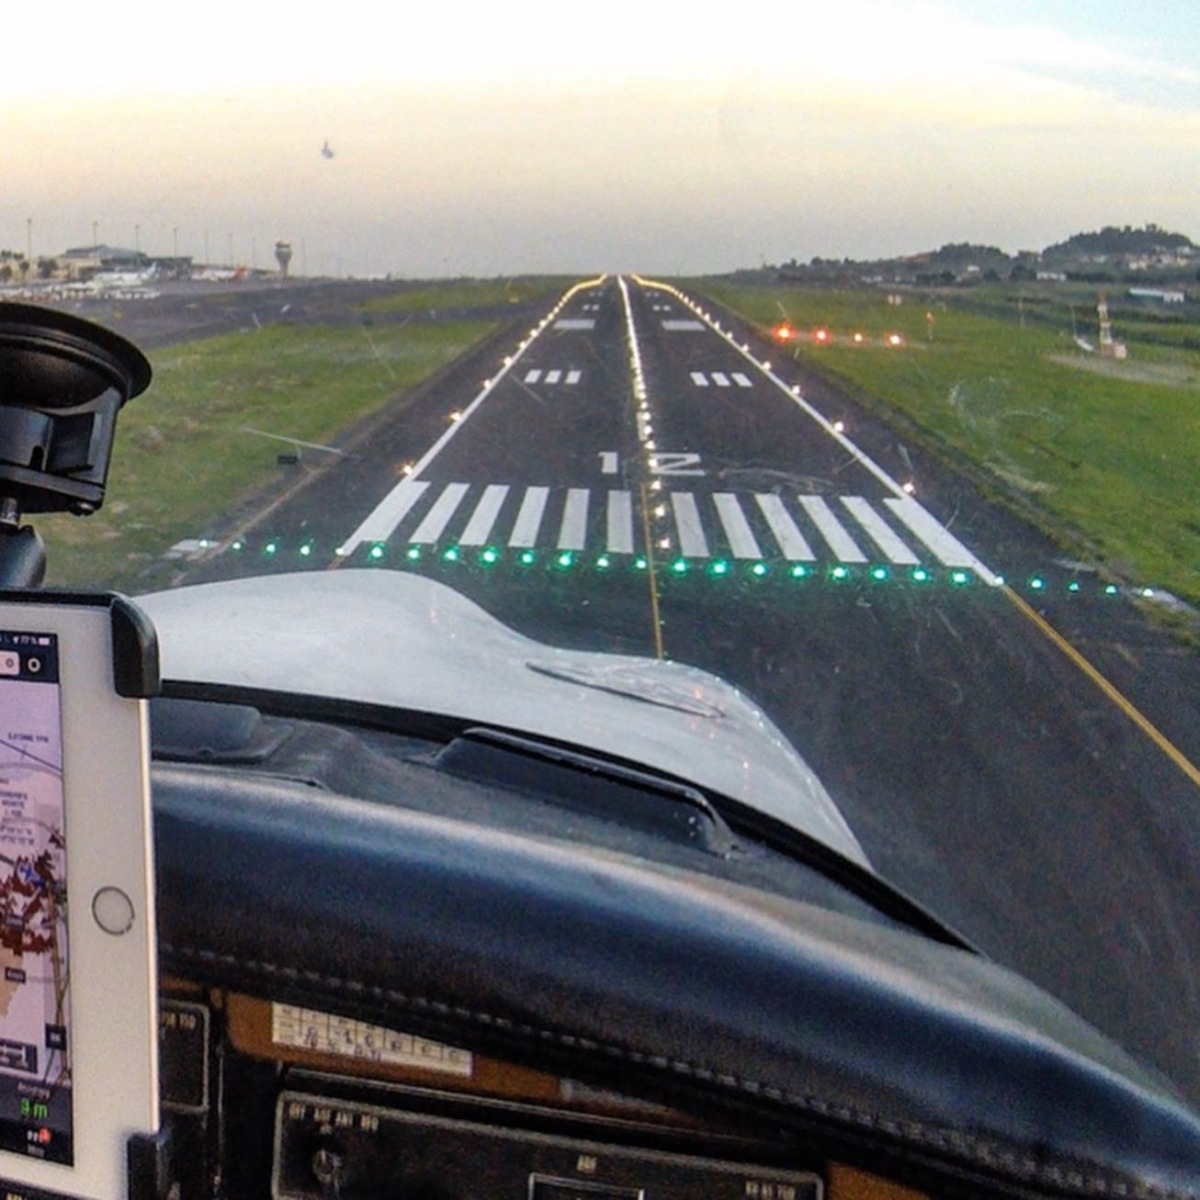 About to land at Tenerife North Airport